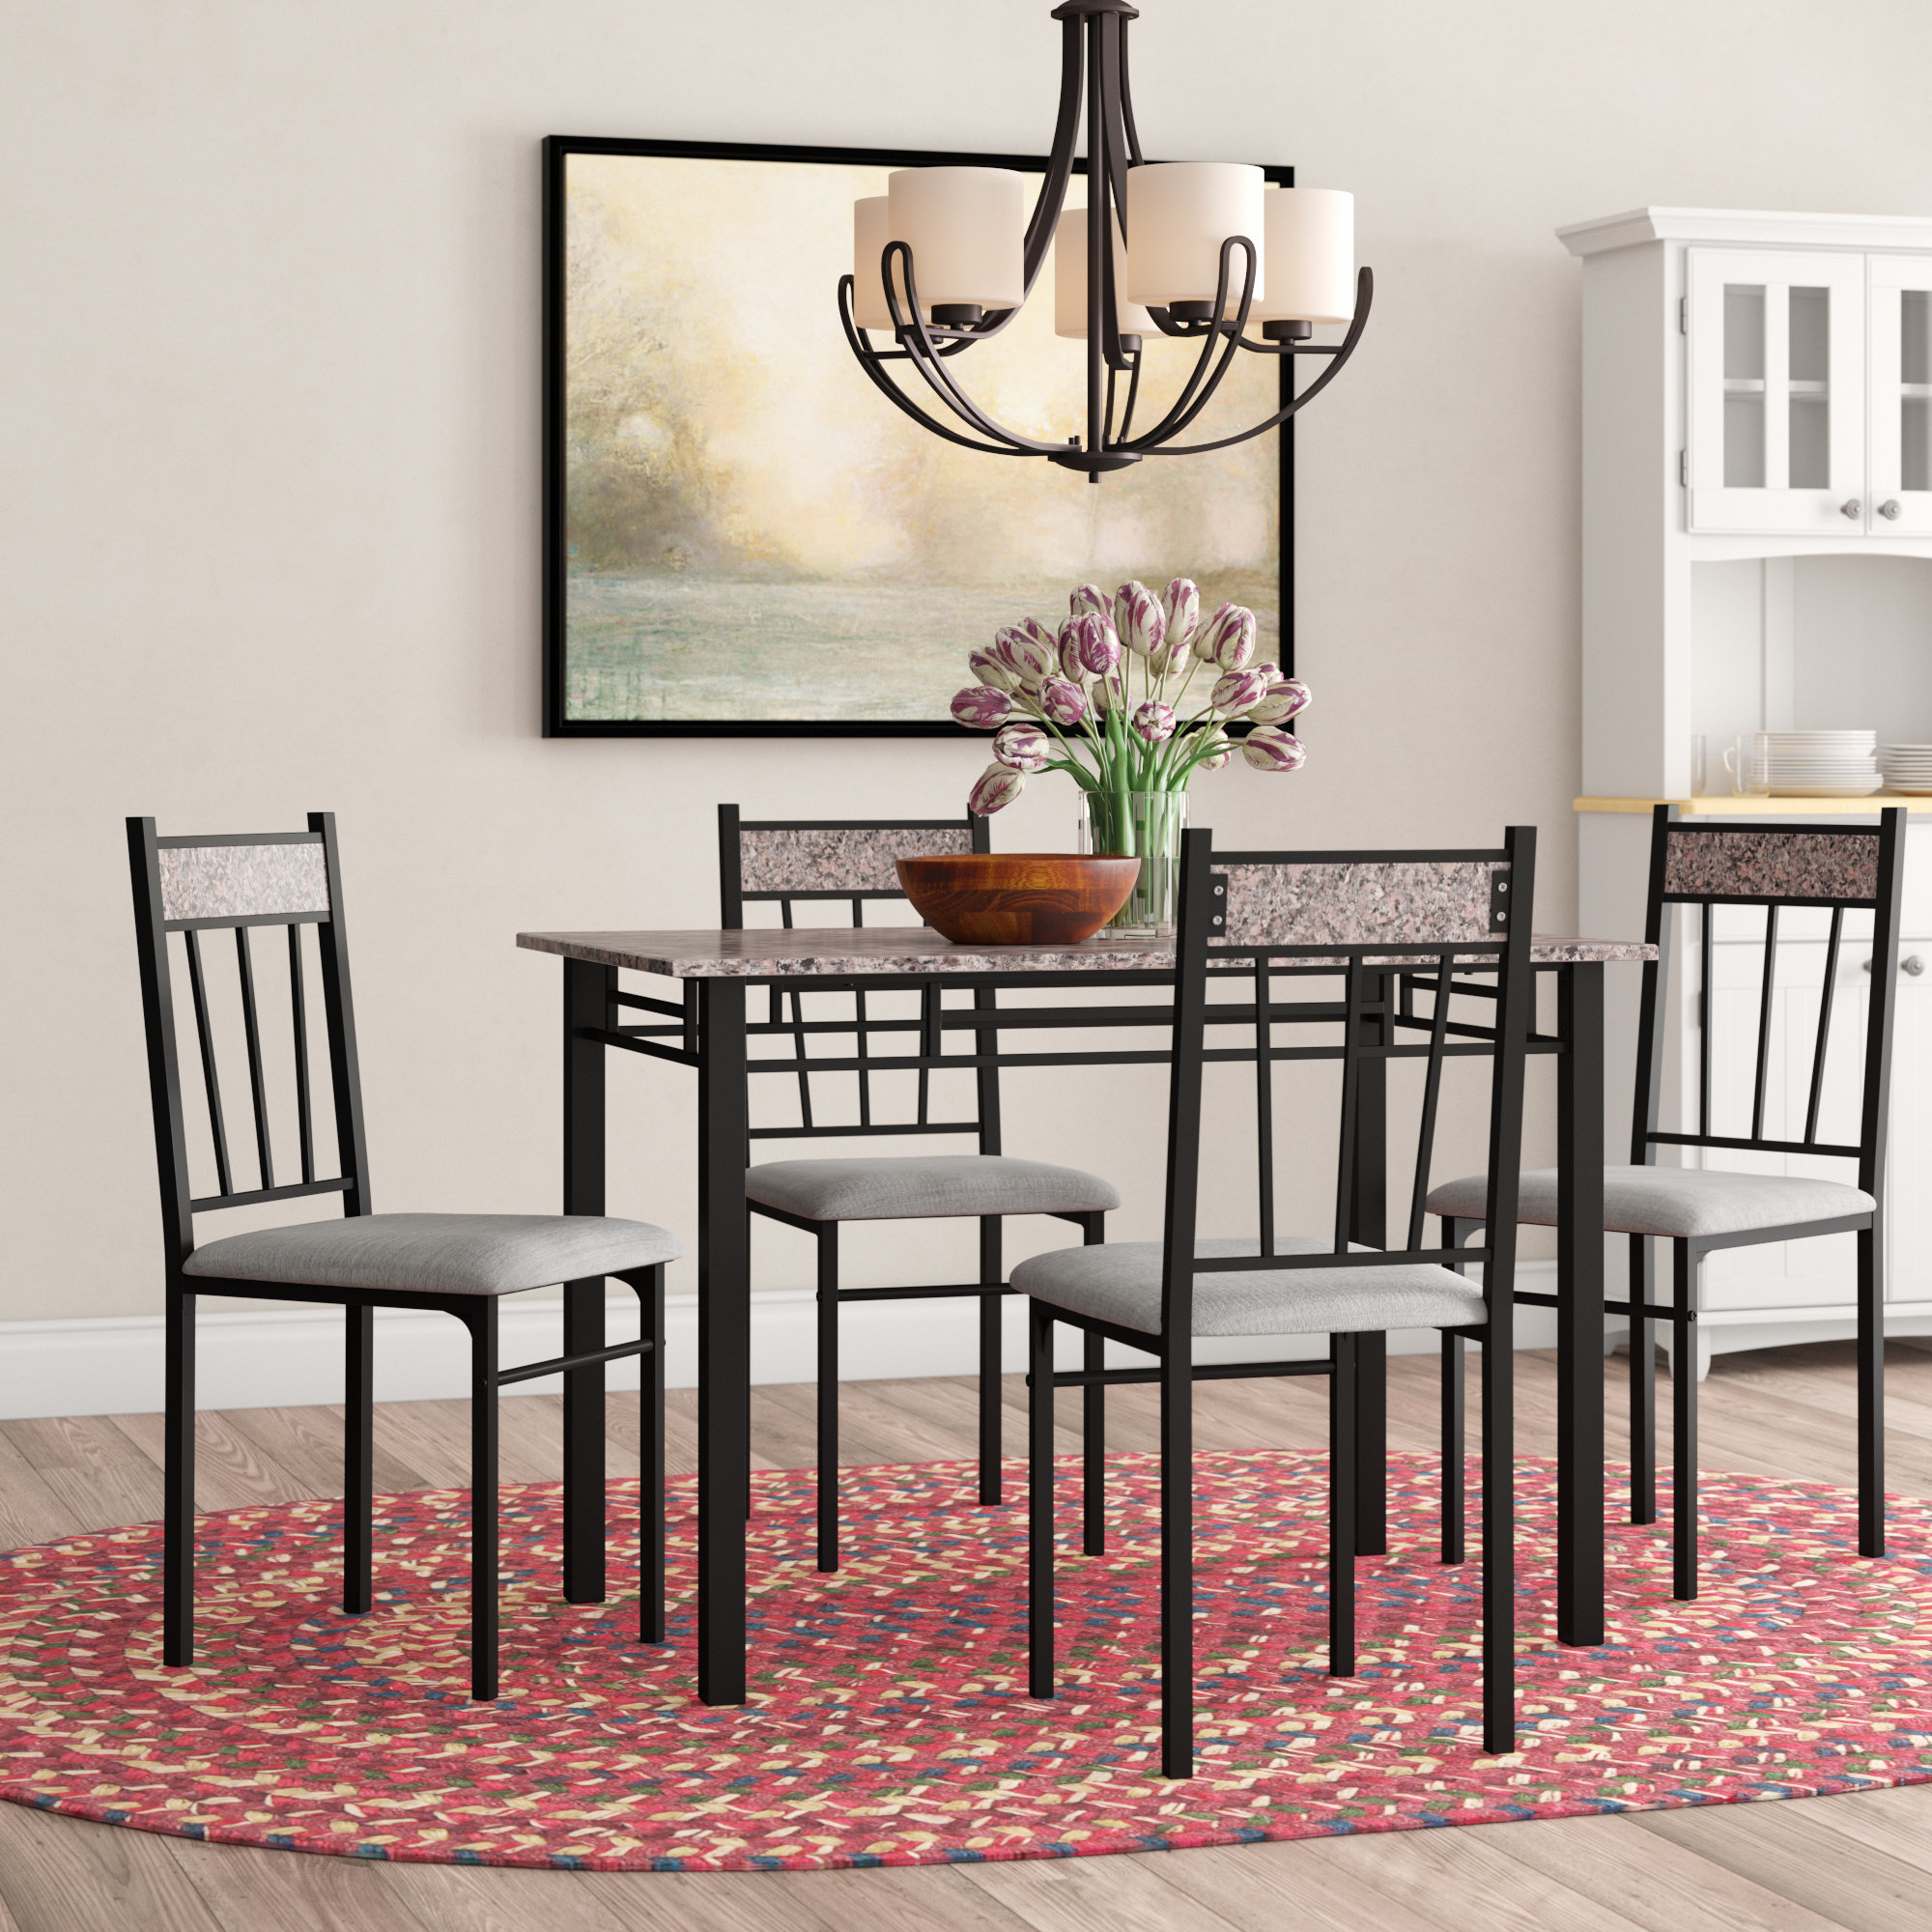 Lightle 5 Piece Breakfast Nook Dining Sets With Regard To Best And Newest Winston Porter Caspar 5 Piece Dining Set & Reviews (View 6 of 20)